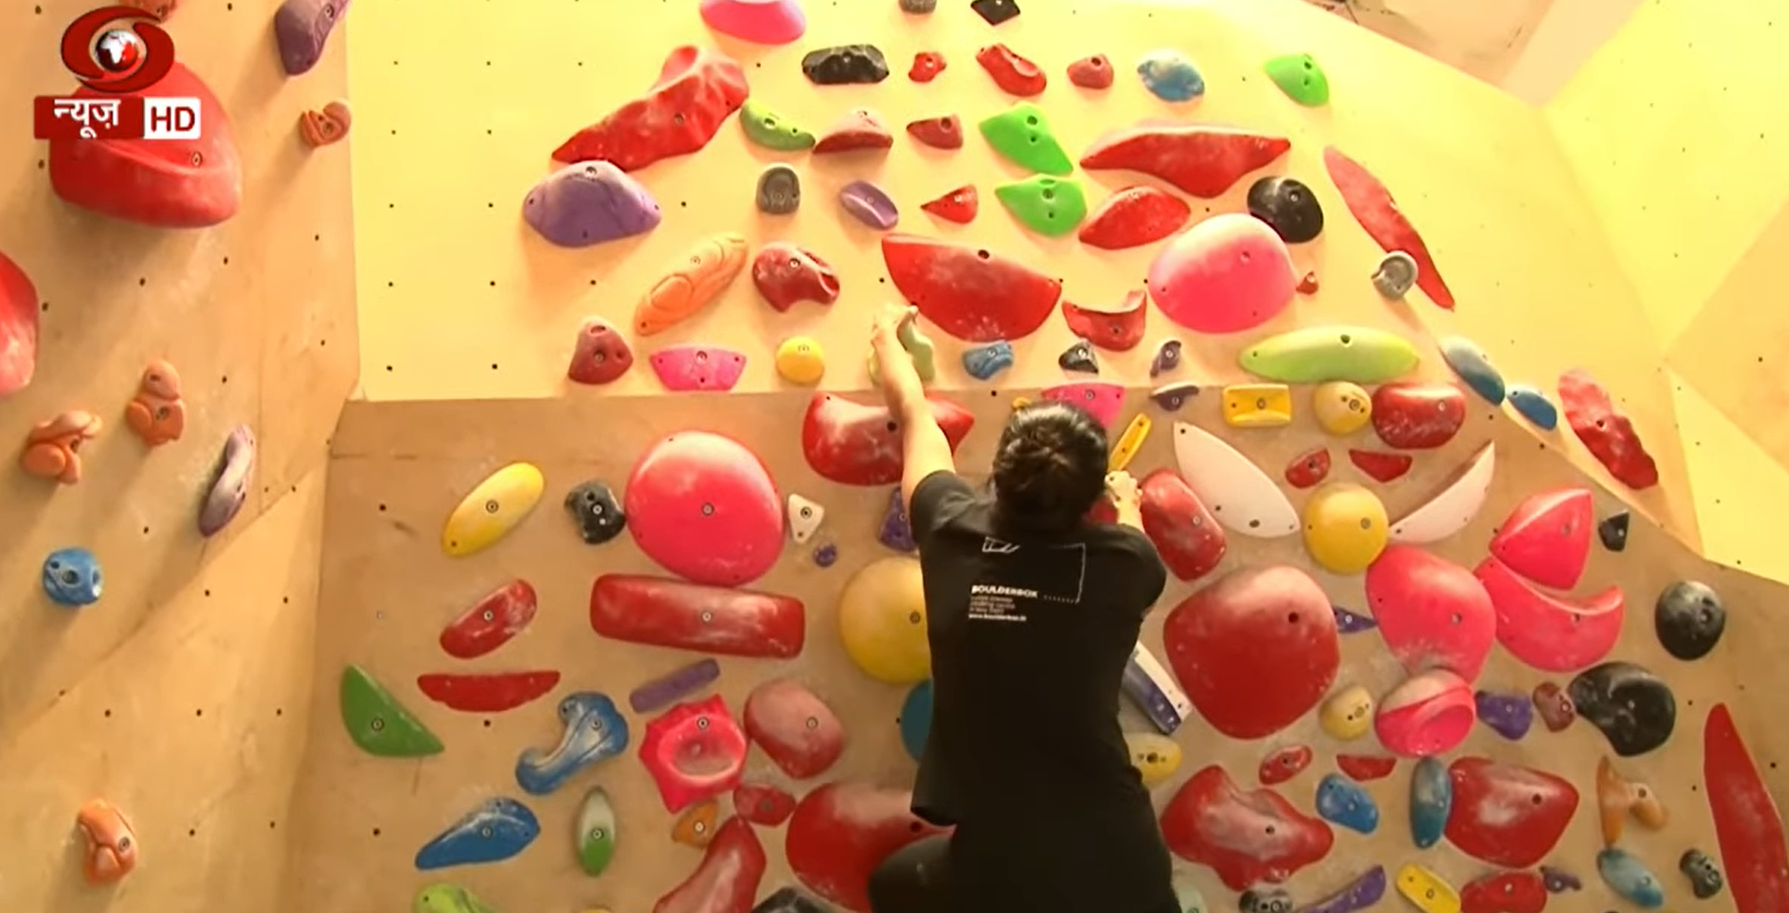 Scaling new heights of fitness with indoor climbing | Fit India Movement